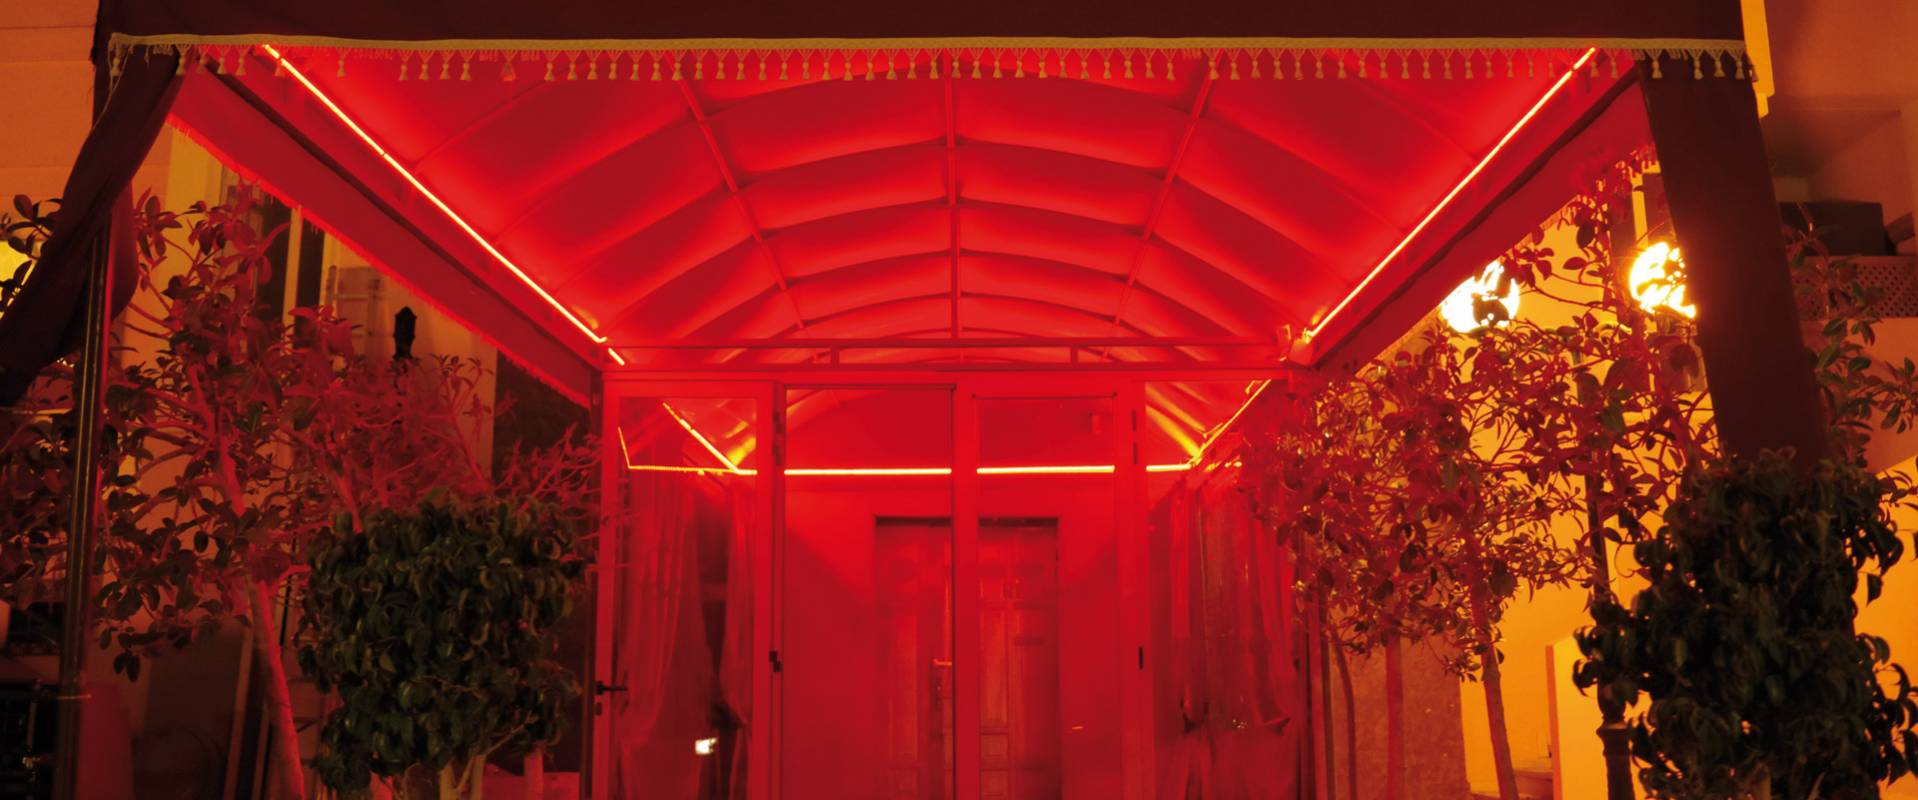 The entrance to the Layali Beirut club in Tunis.